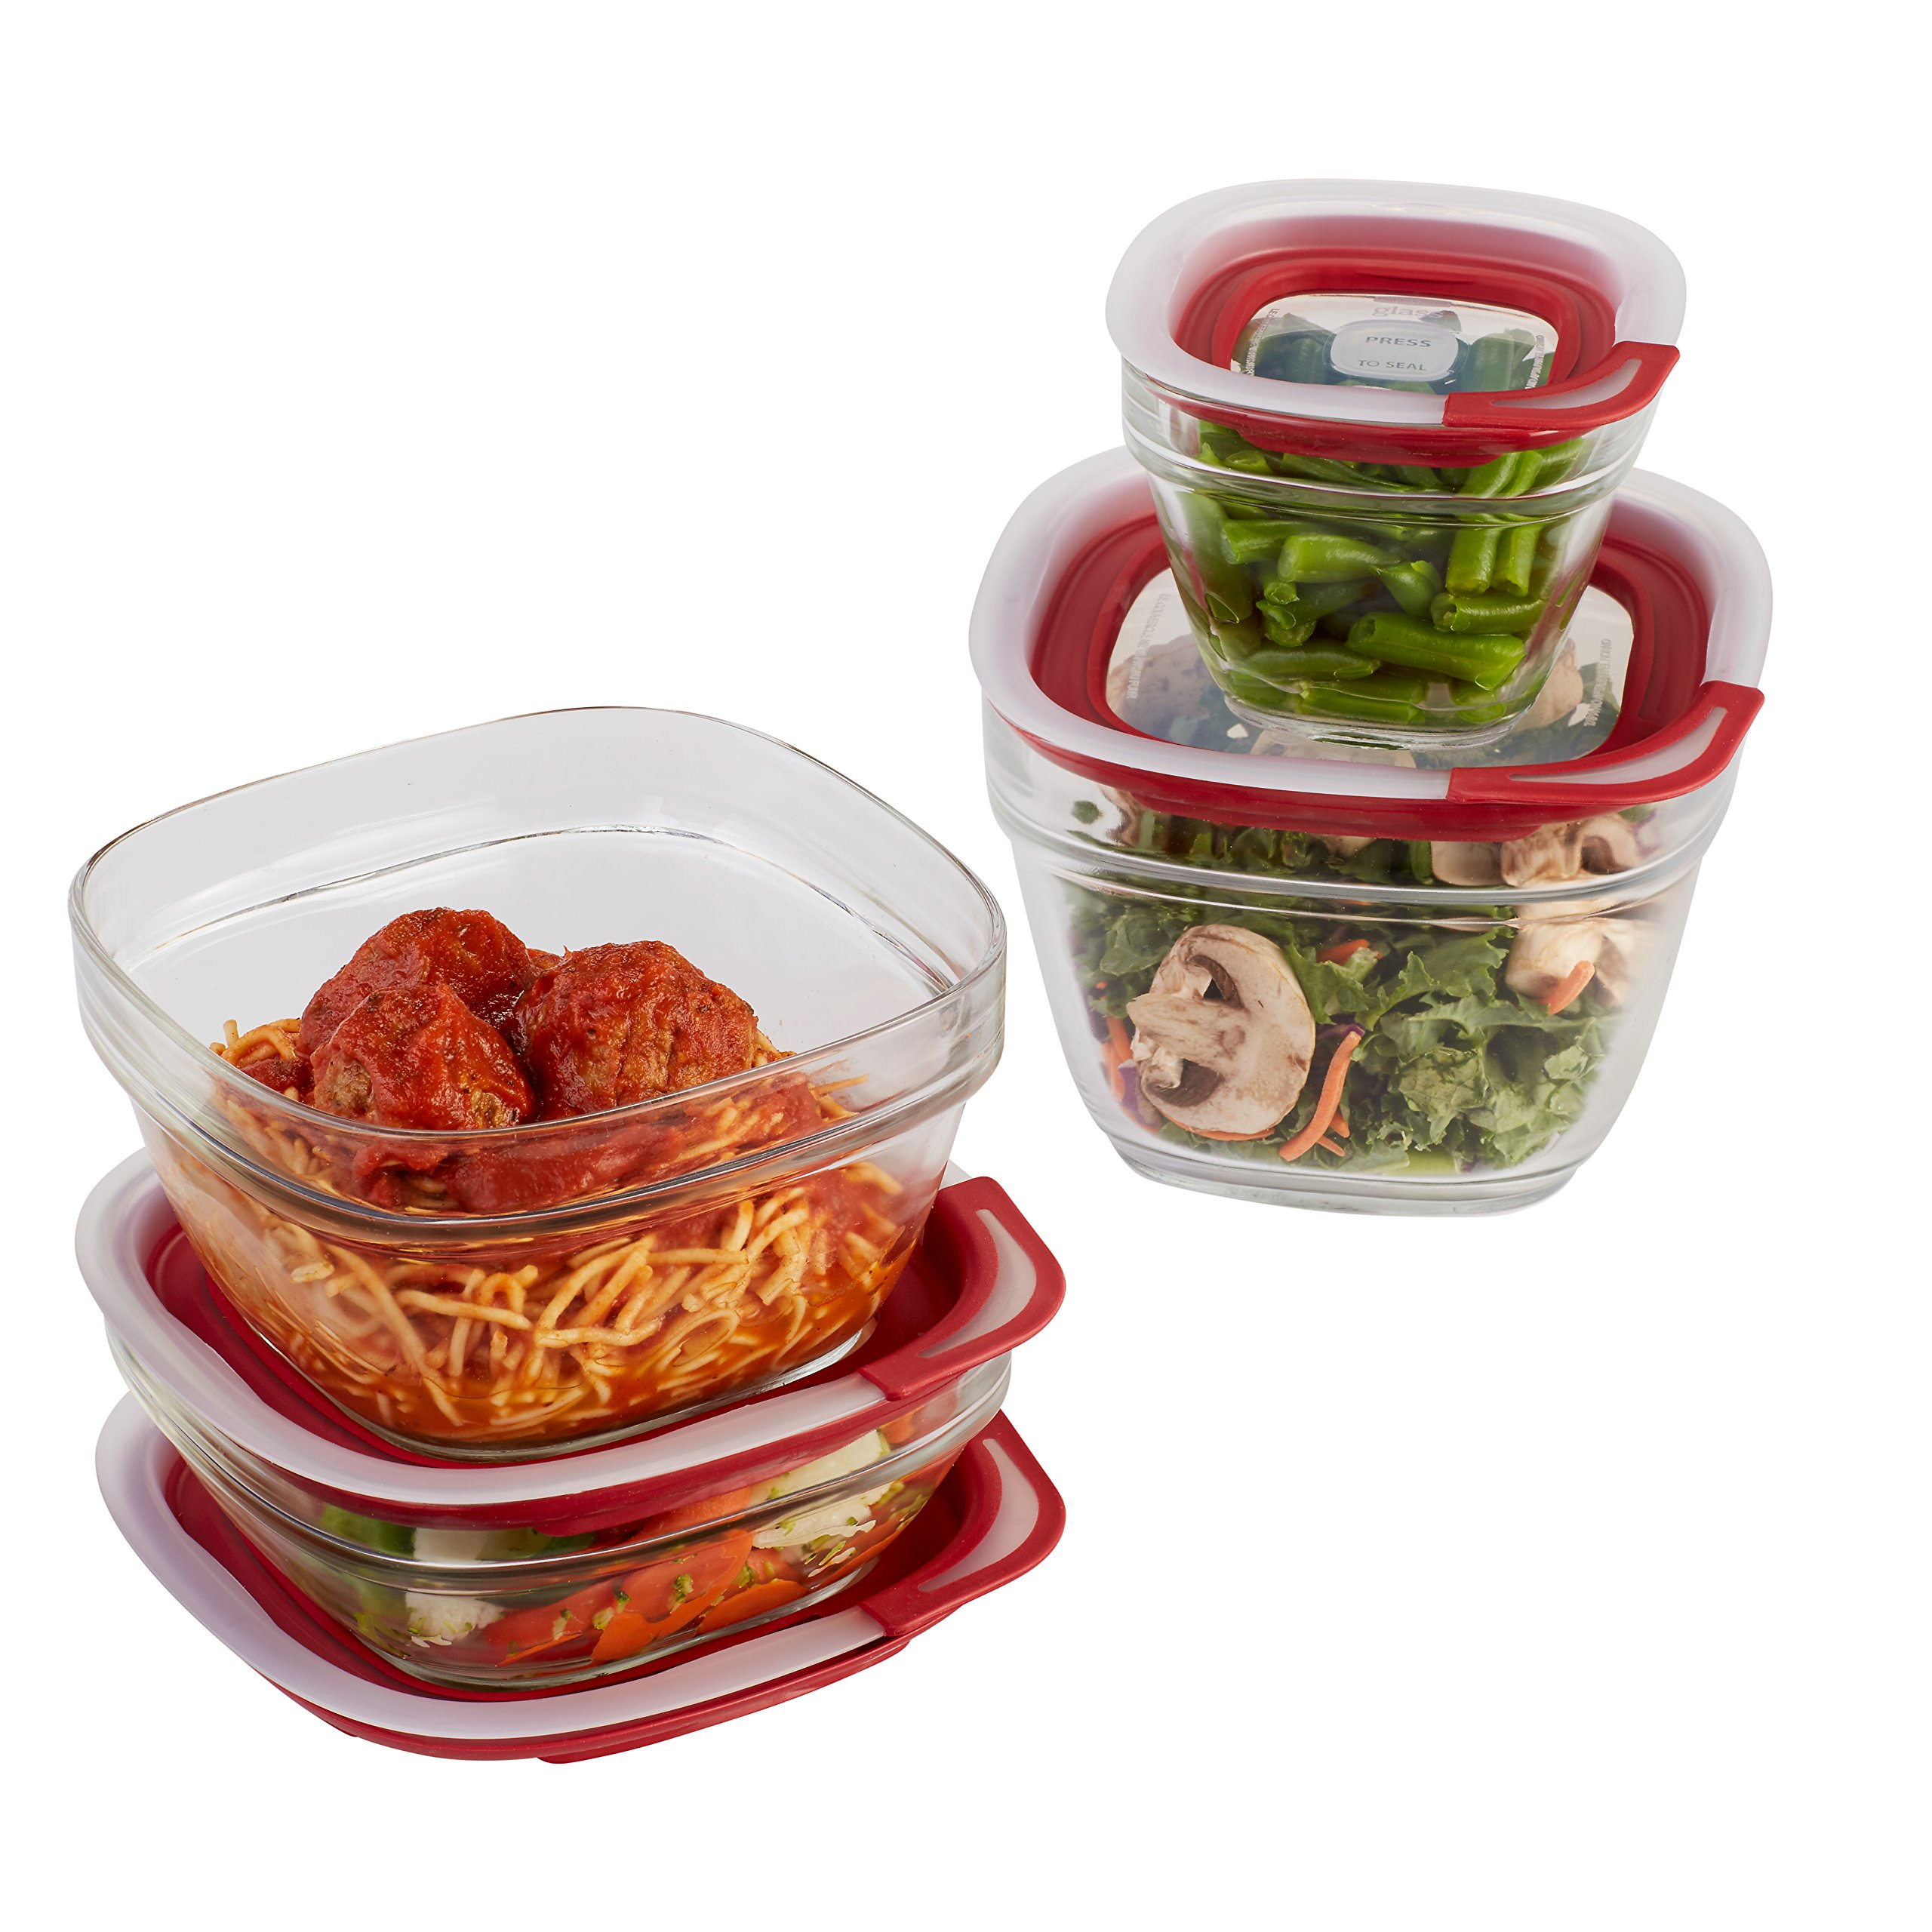 best glass food storage containers. Black Bedroom Furniture Sets. Home Design Ideas